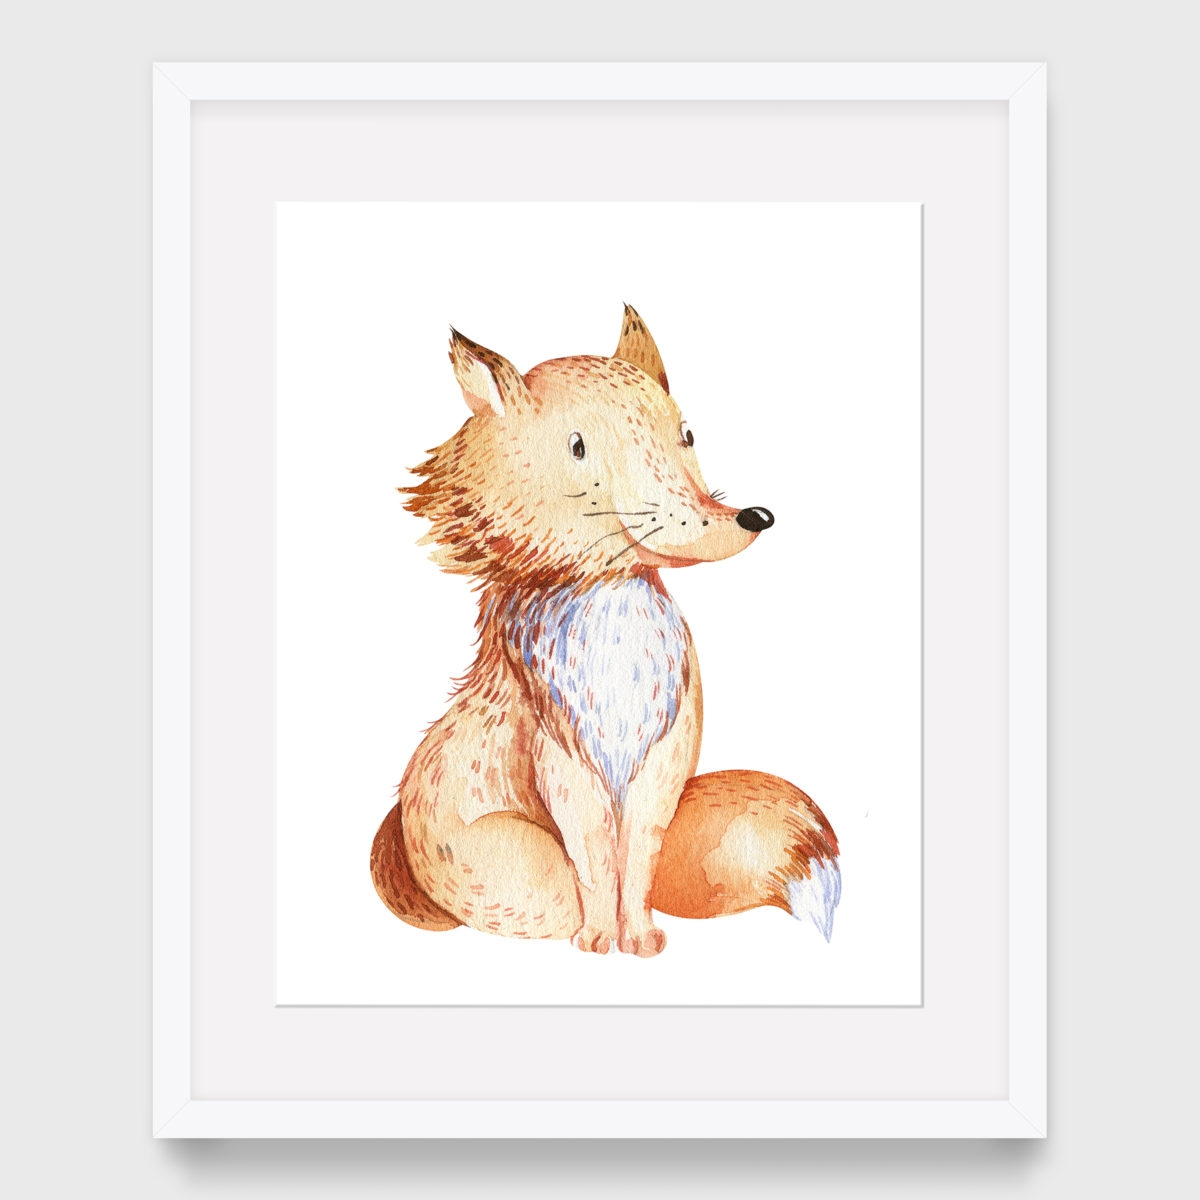 45. Fox without floral